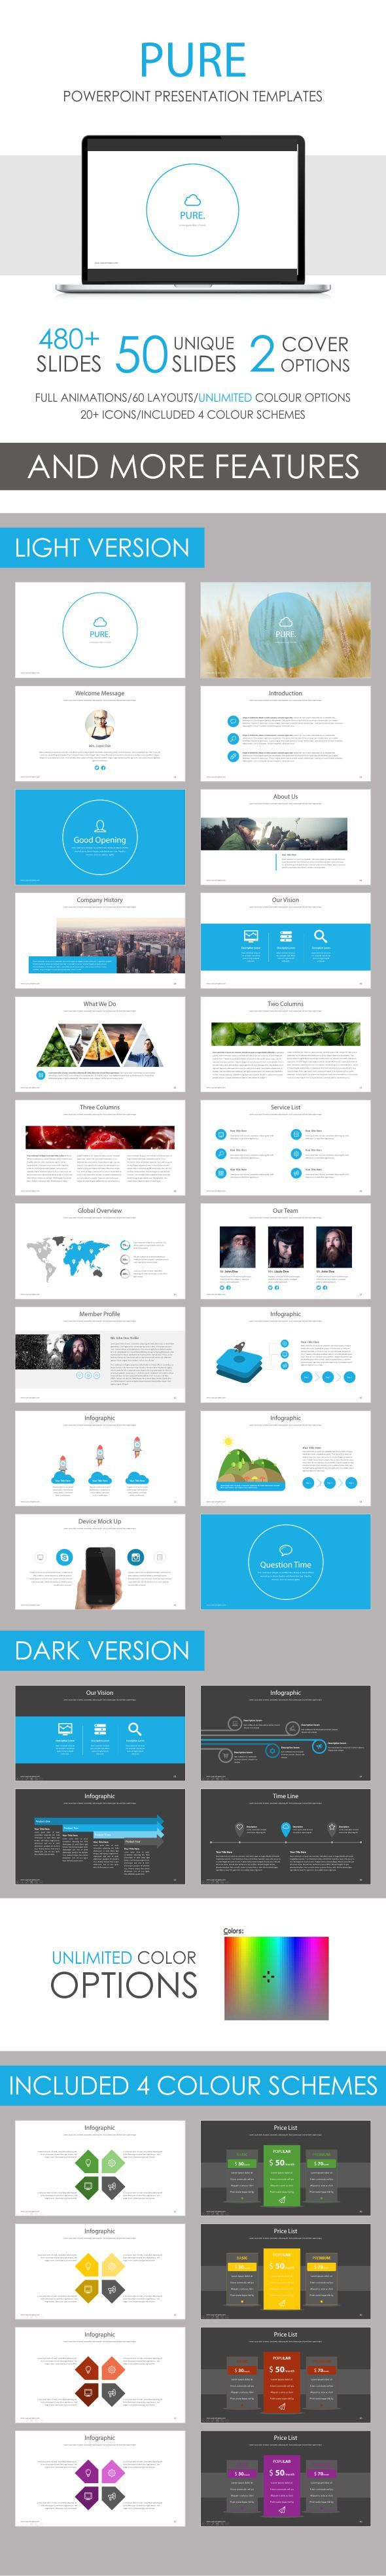 pure powerpoint template template ppt design and presentation